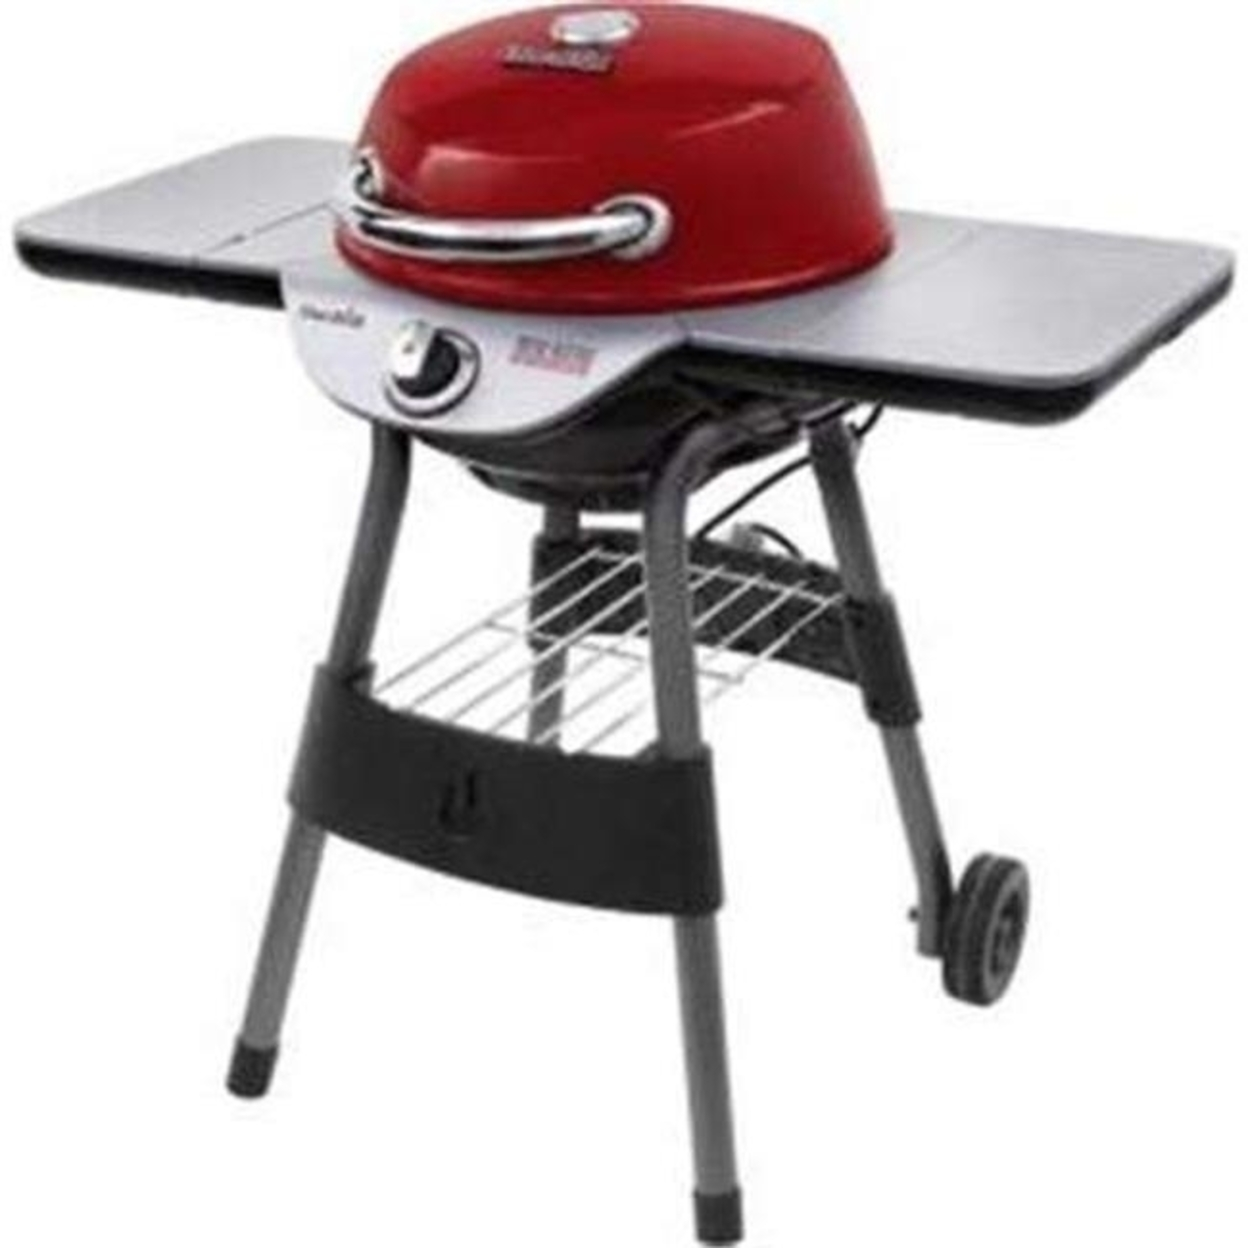 Char-Broil 17602047 Patio Bistro Electric Grill - Red 59f0c717e2246160ea6c4e4c